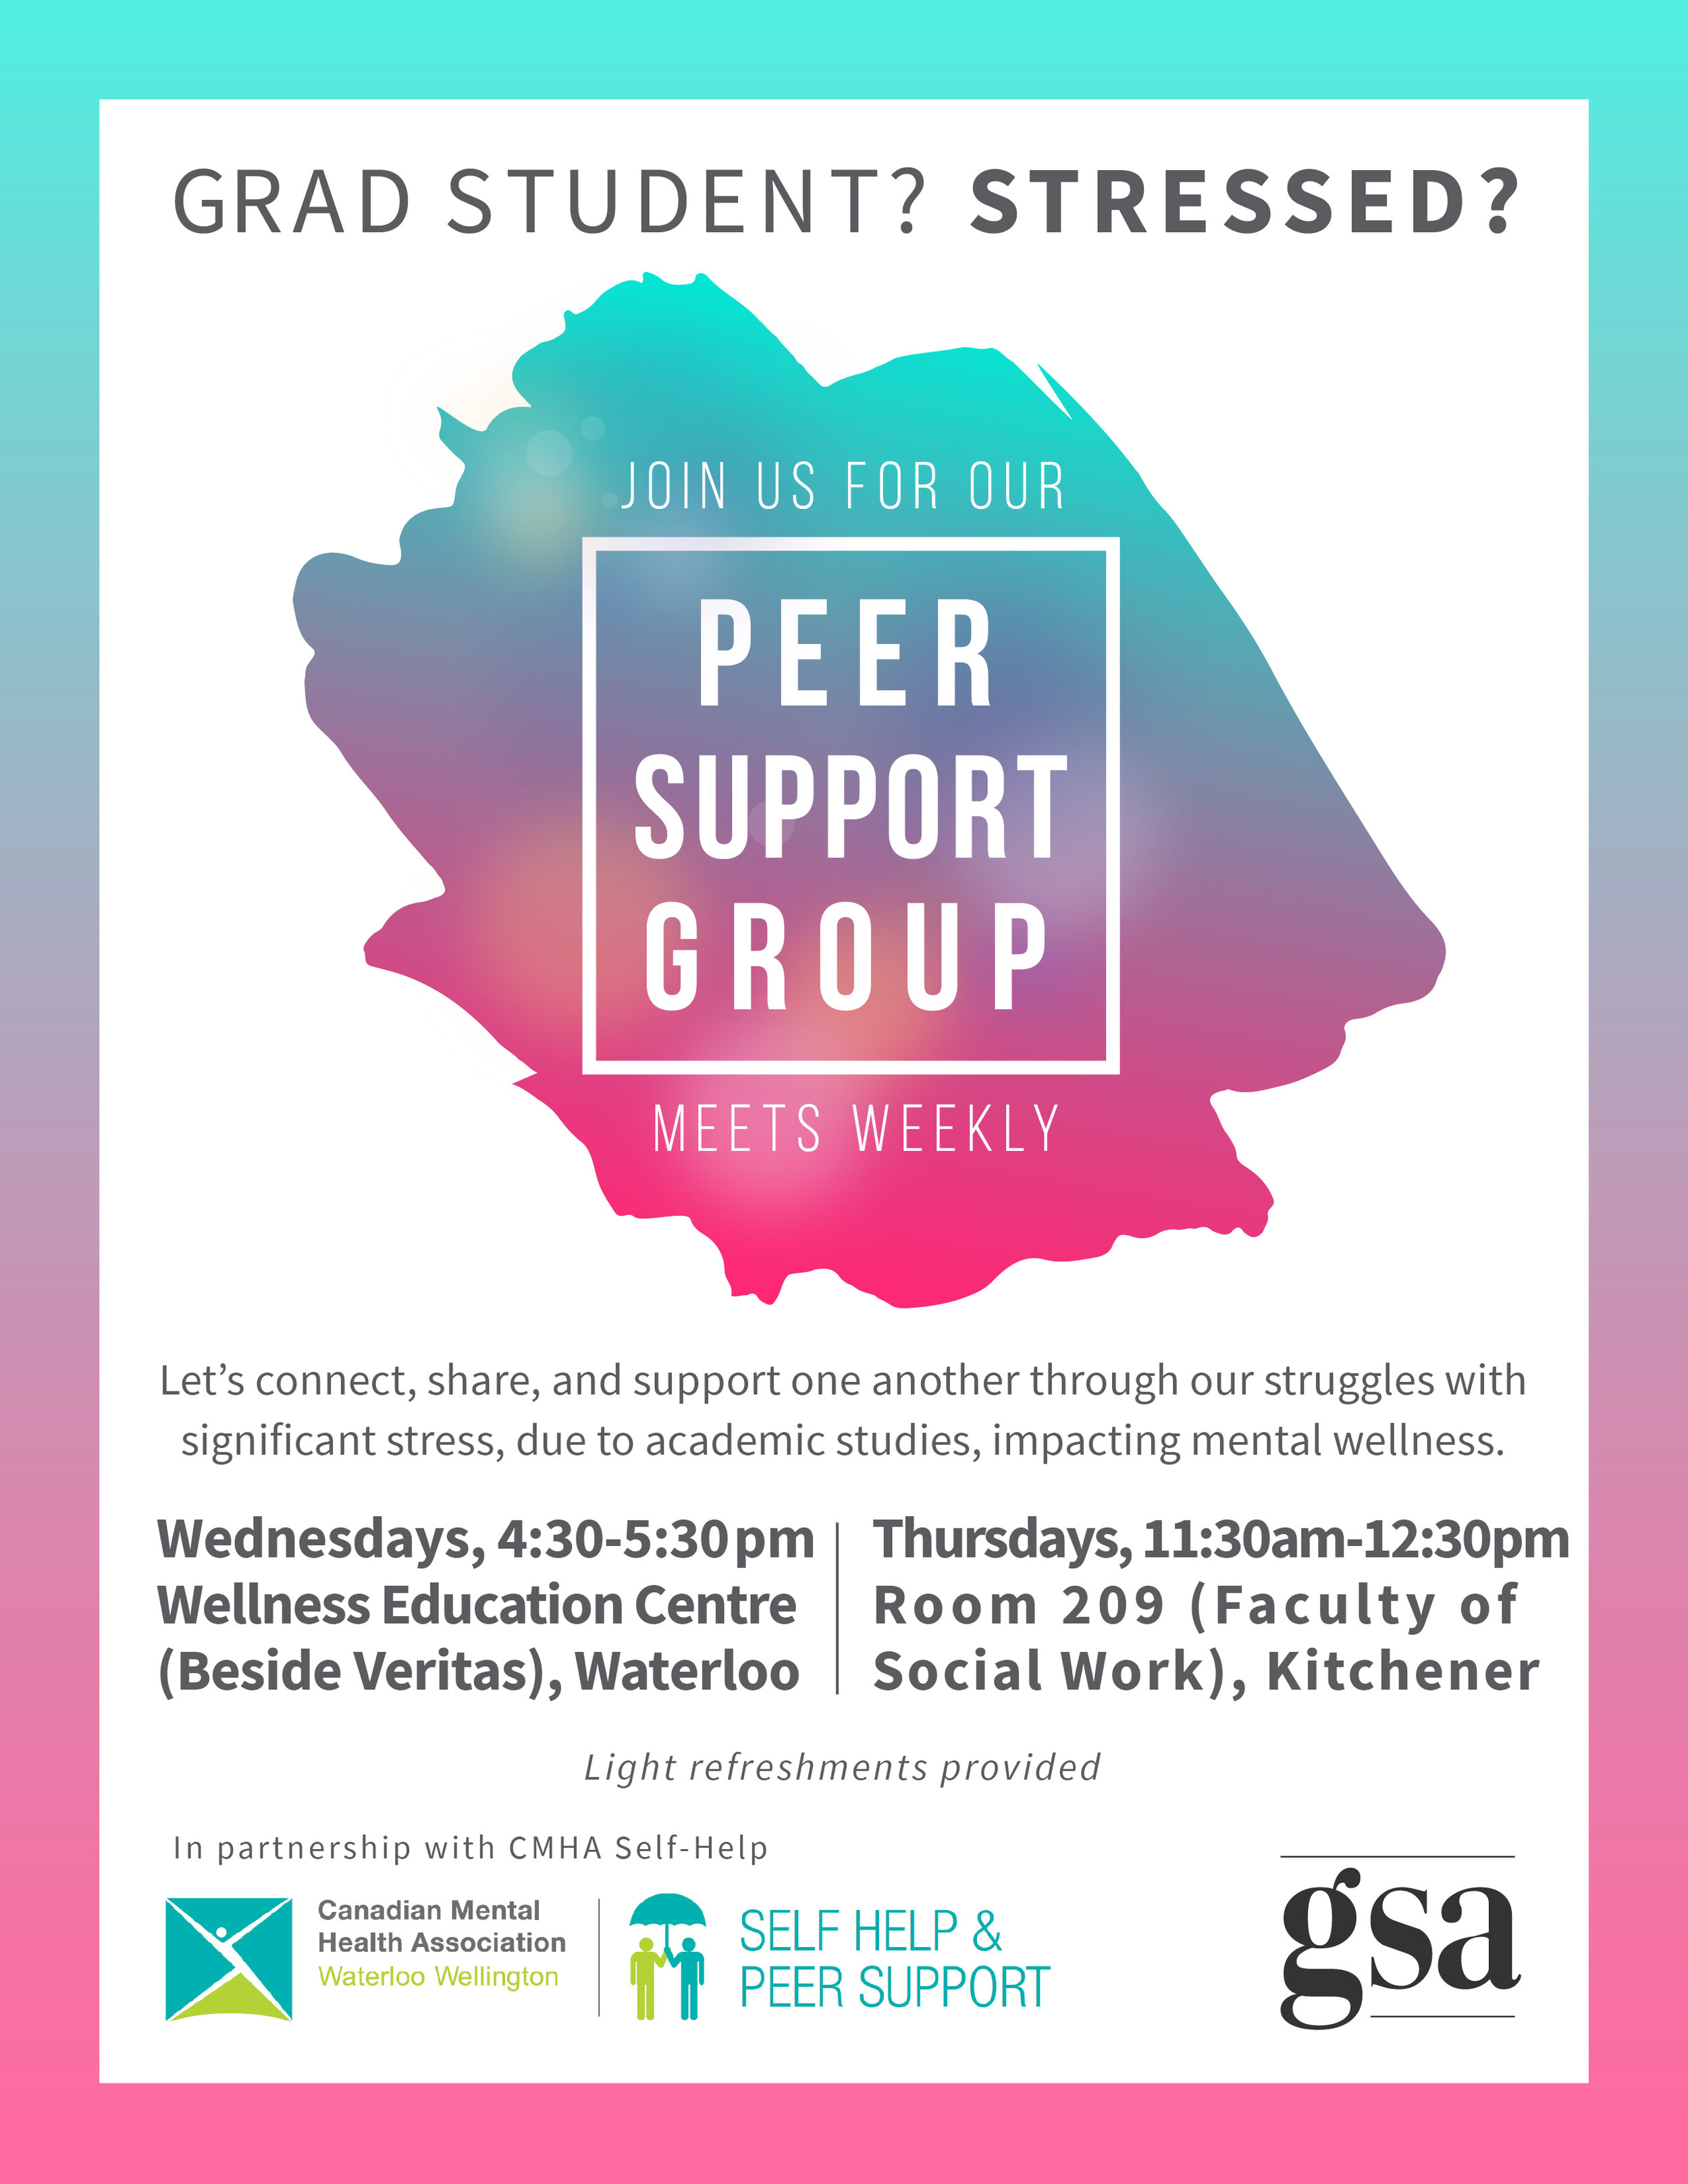 Grad student? stressed? Join us for our peer support group! Let's connect, share, and support one another through our struggles with significant stress, due to academic studies, impacting mental wellness. Wednesdays, 4:30-5:30 pm Wellness Education Centre (Beside Veritas) in Waterloo and Thursdays, 11:30am-12:30 pm Room 209 (Faculty of Social Work), Kitchener. Light refreshments provided